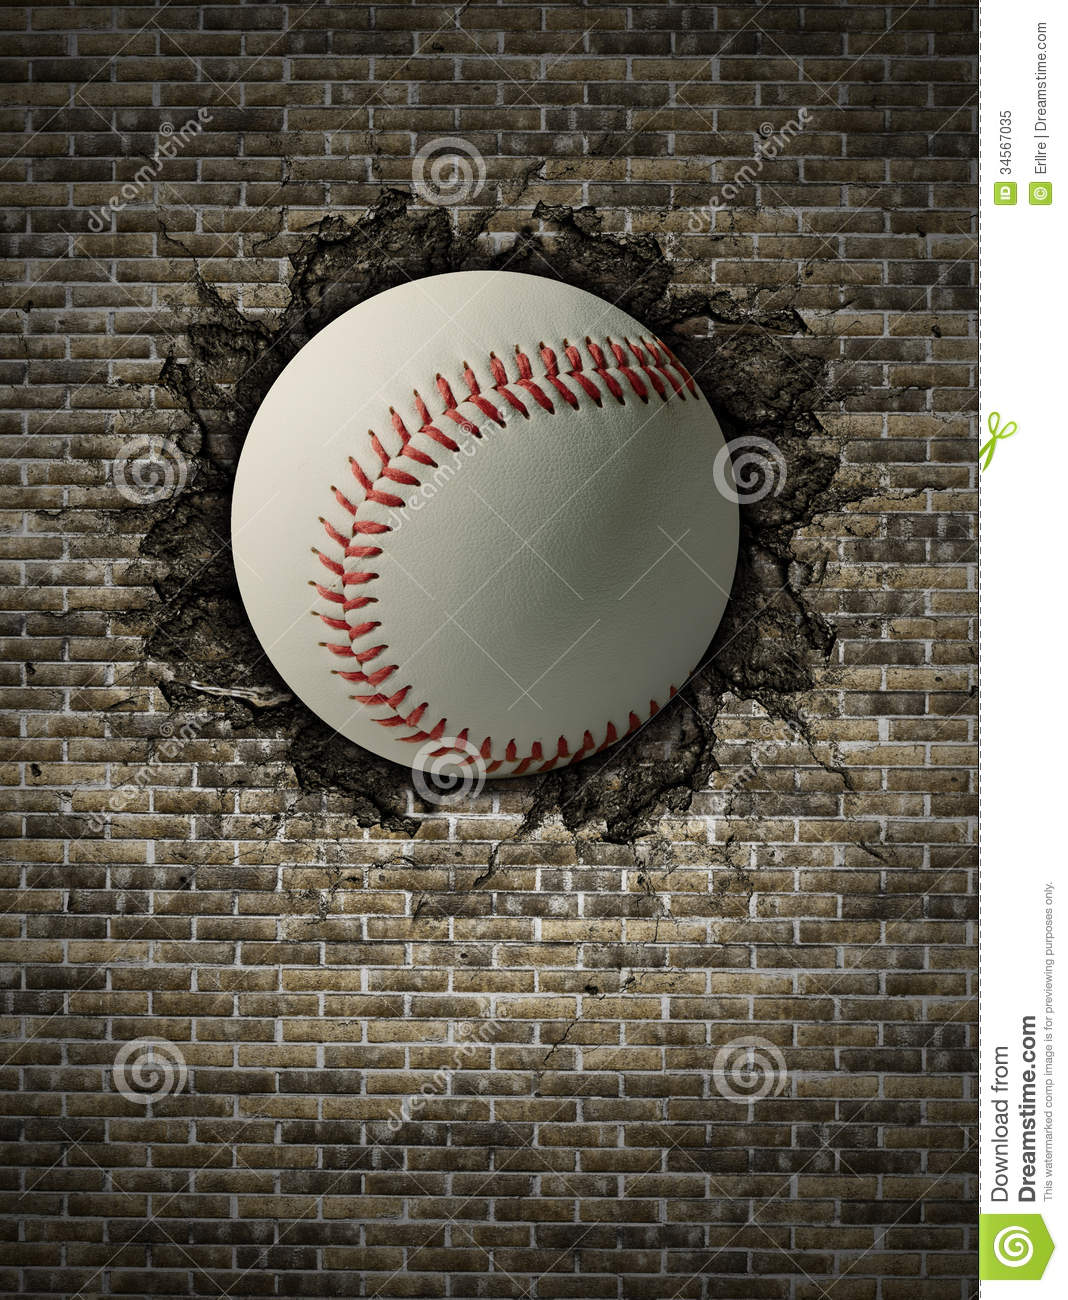 Baseball on wall stock image Image of sport, activity